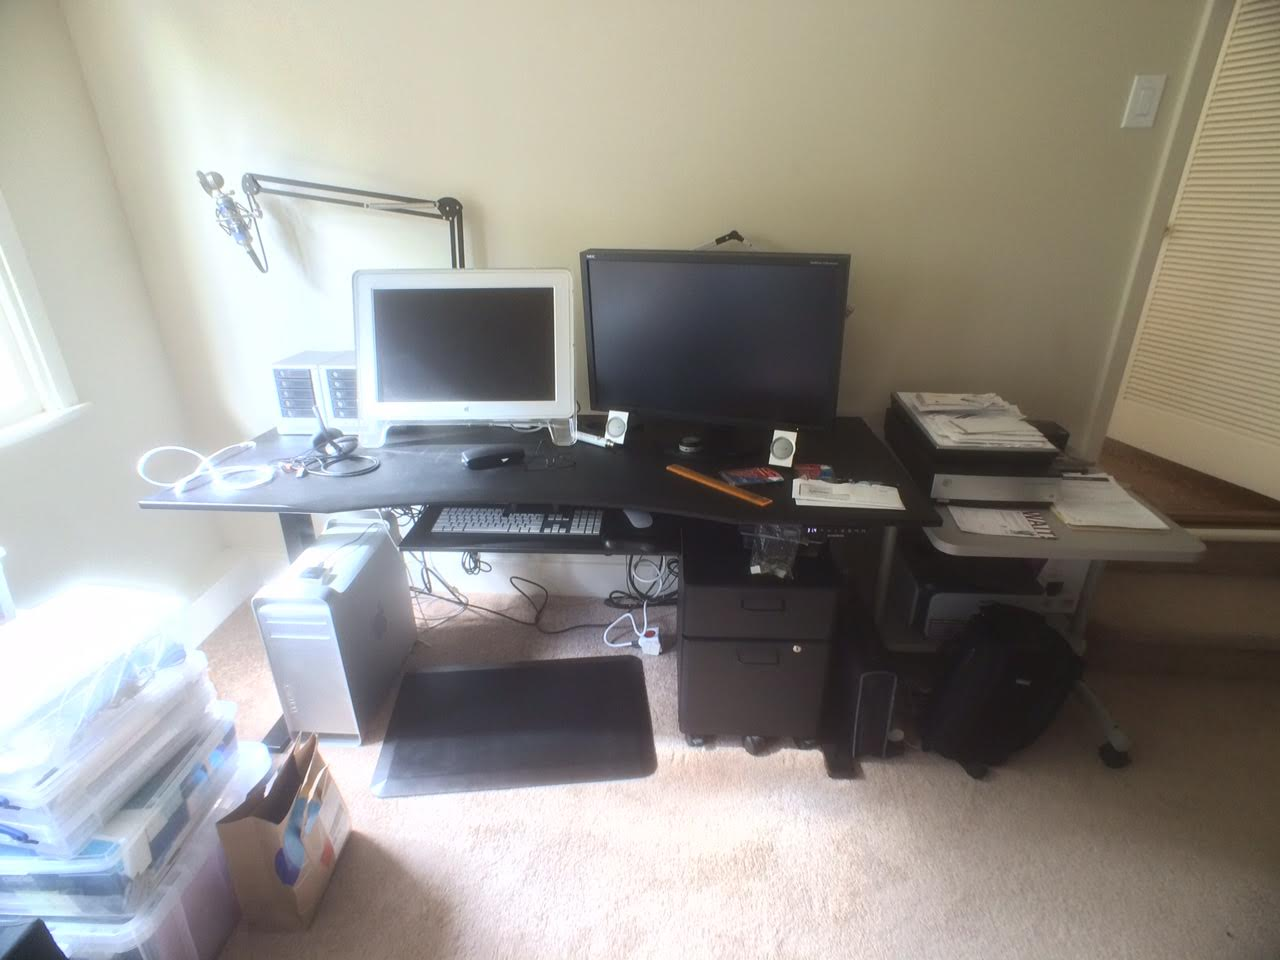 My new office - almost done